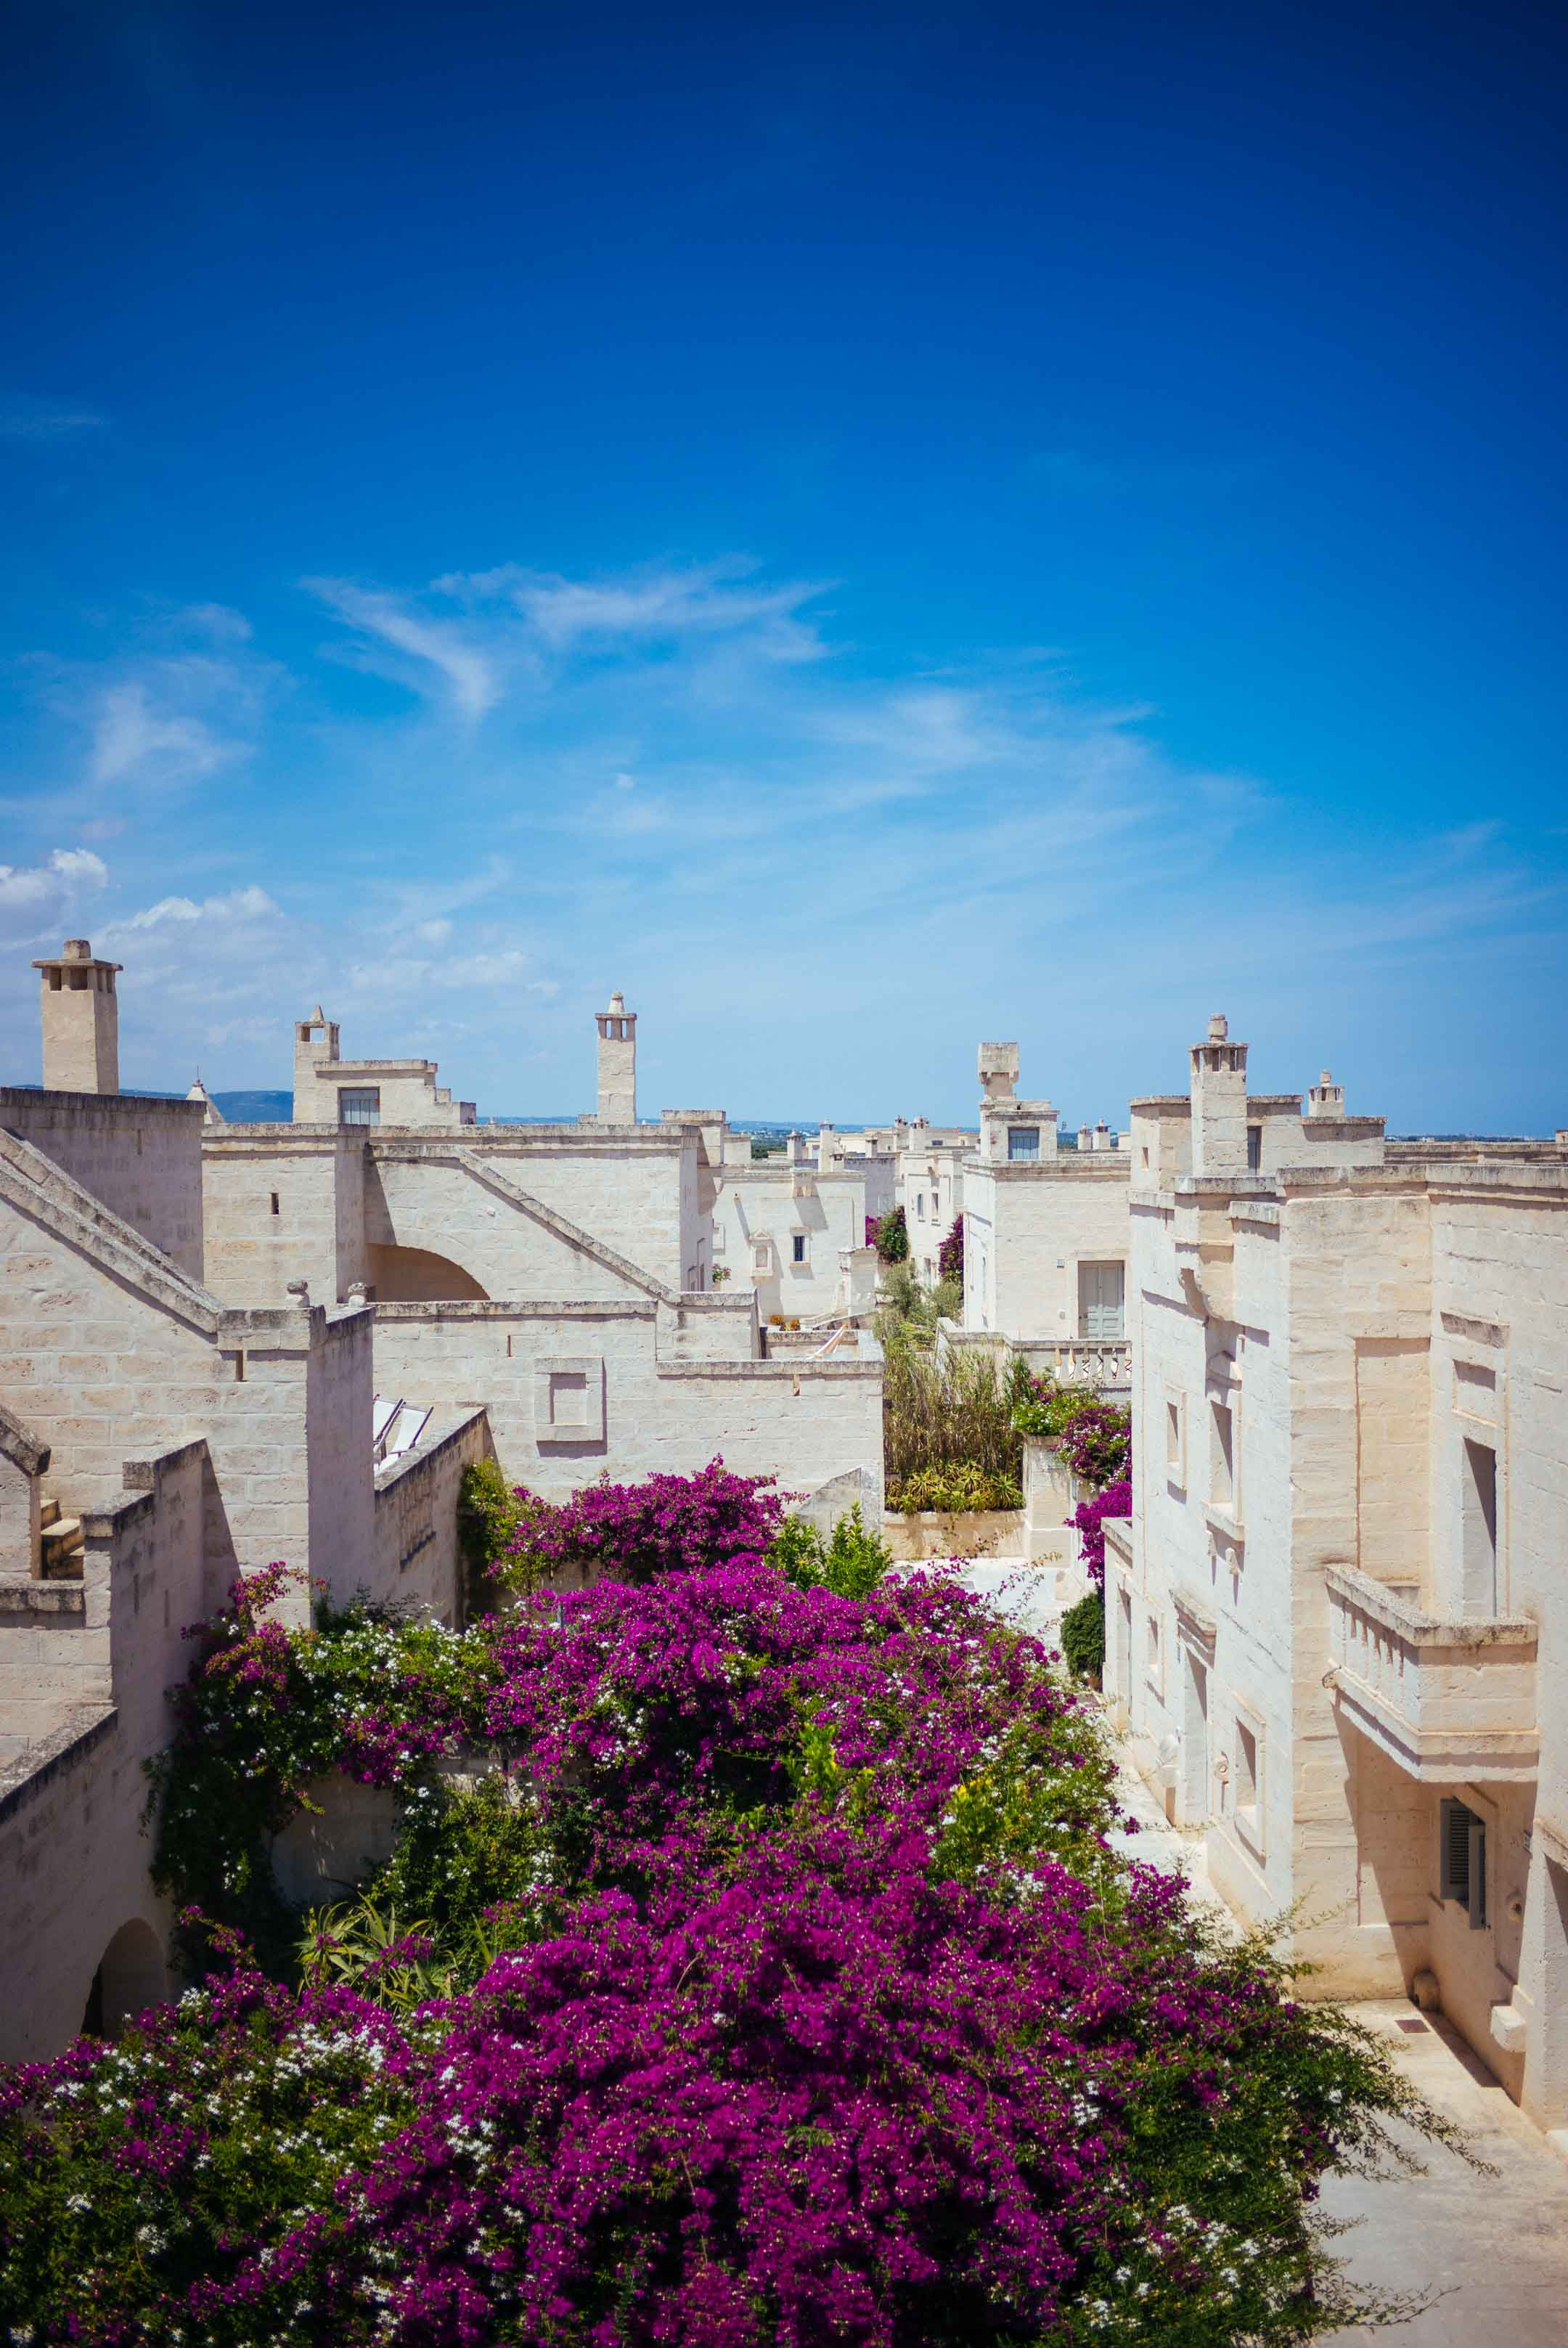 Borgo Egnazia in Puglia is the full luxury hotel for your romantic getaway to Italy with a view of the sea from the top of your villa